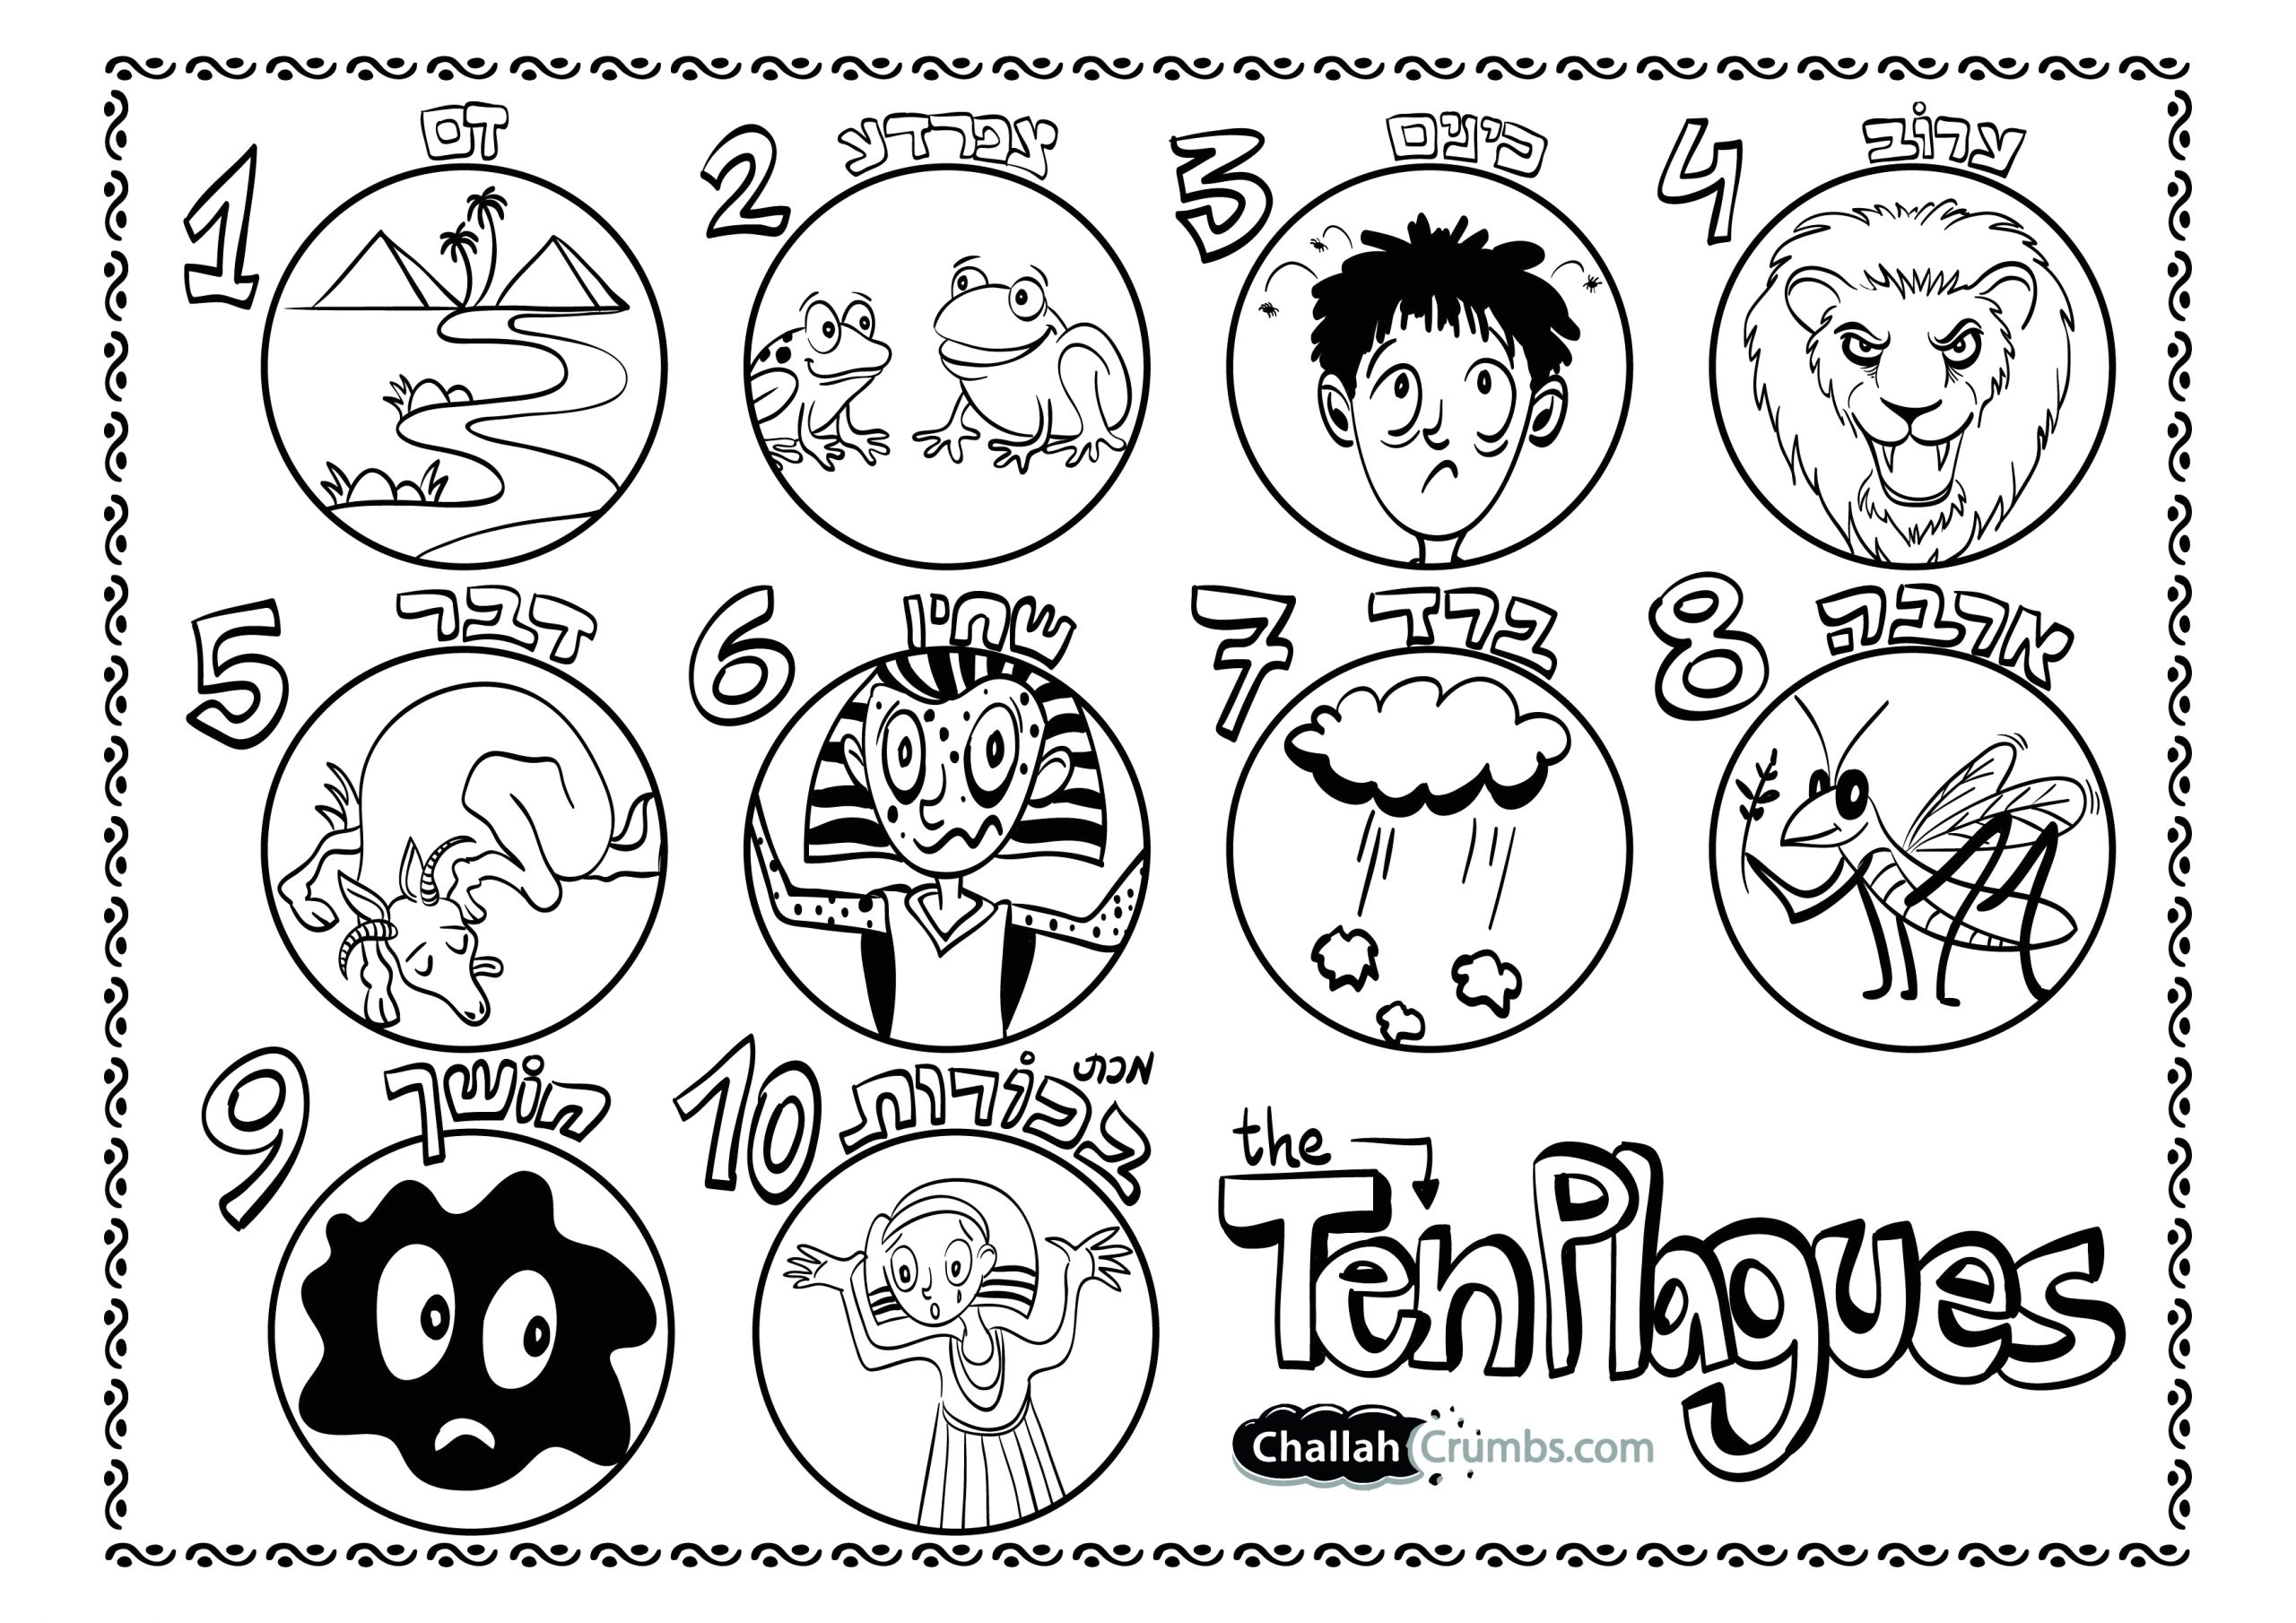 Printable 10 Plagues Of Egypt Coloring Pages Coloring Page 10 Plagues Challah Crumbs